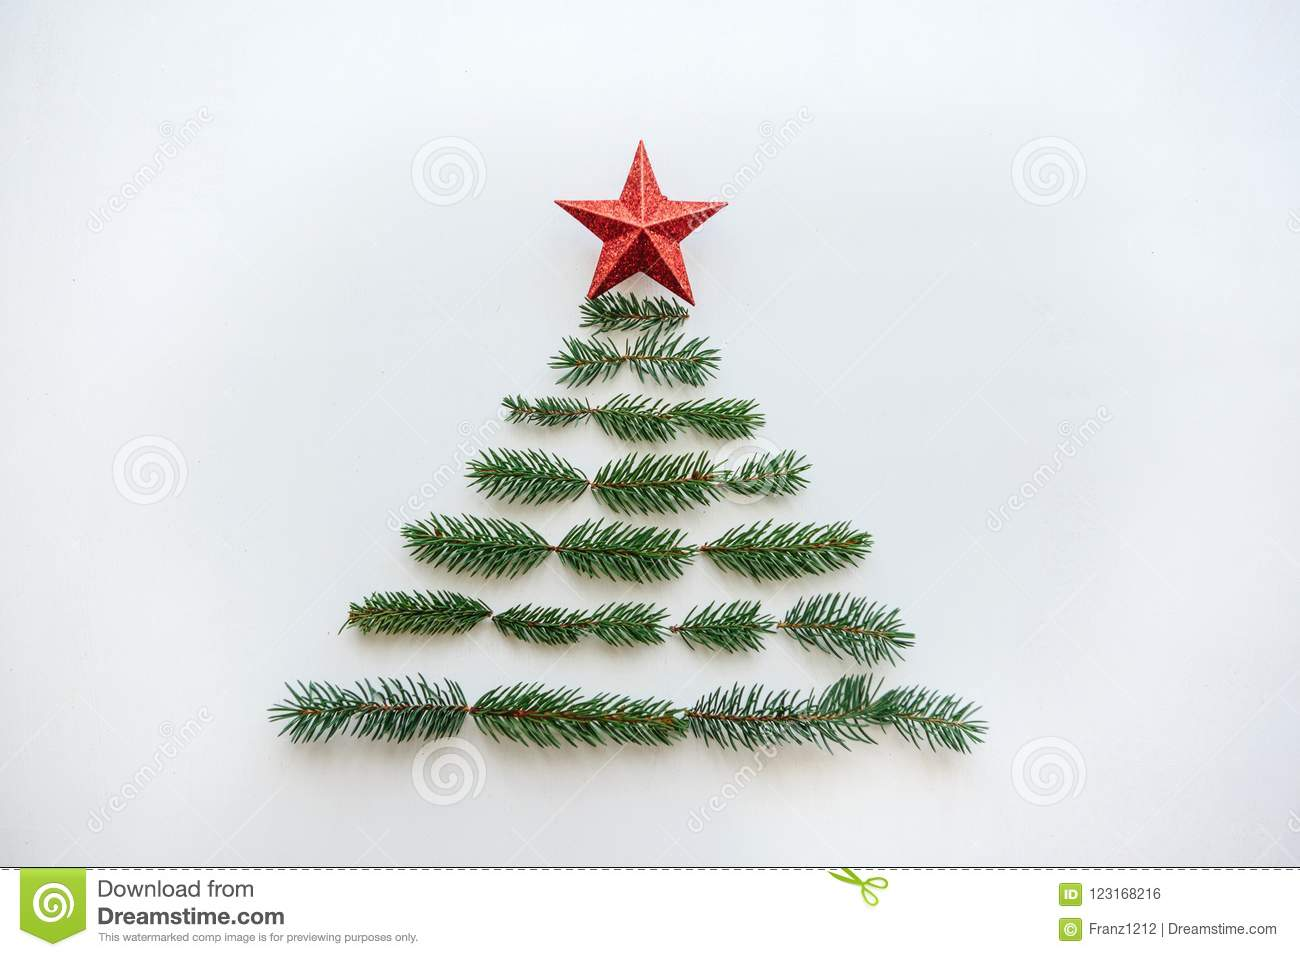 A Christmas Tree From Spruce Branches And A Star On Top. Stock Photo ...